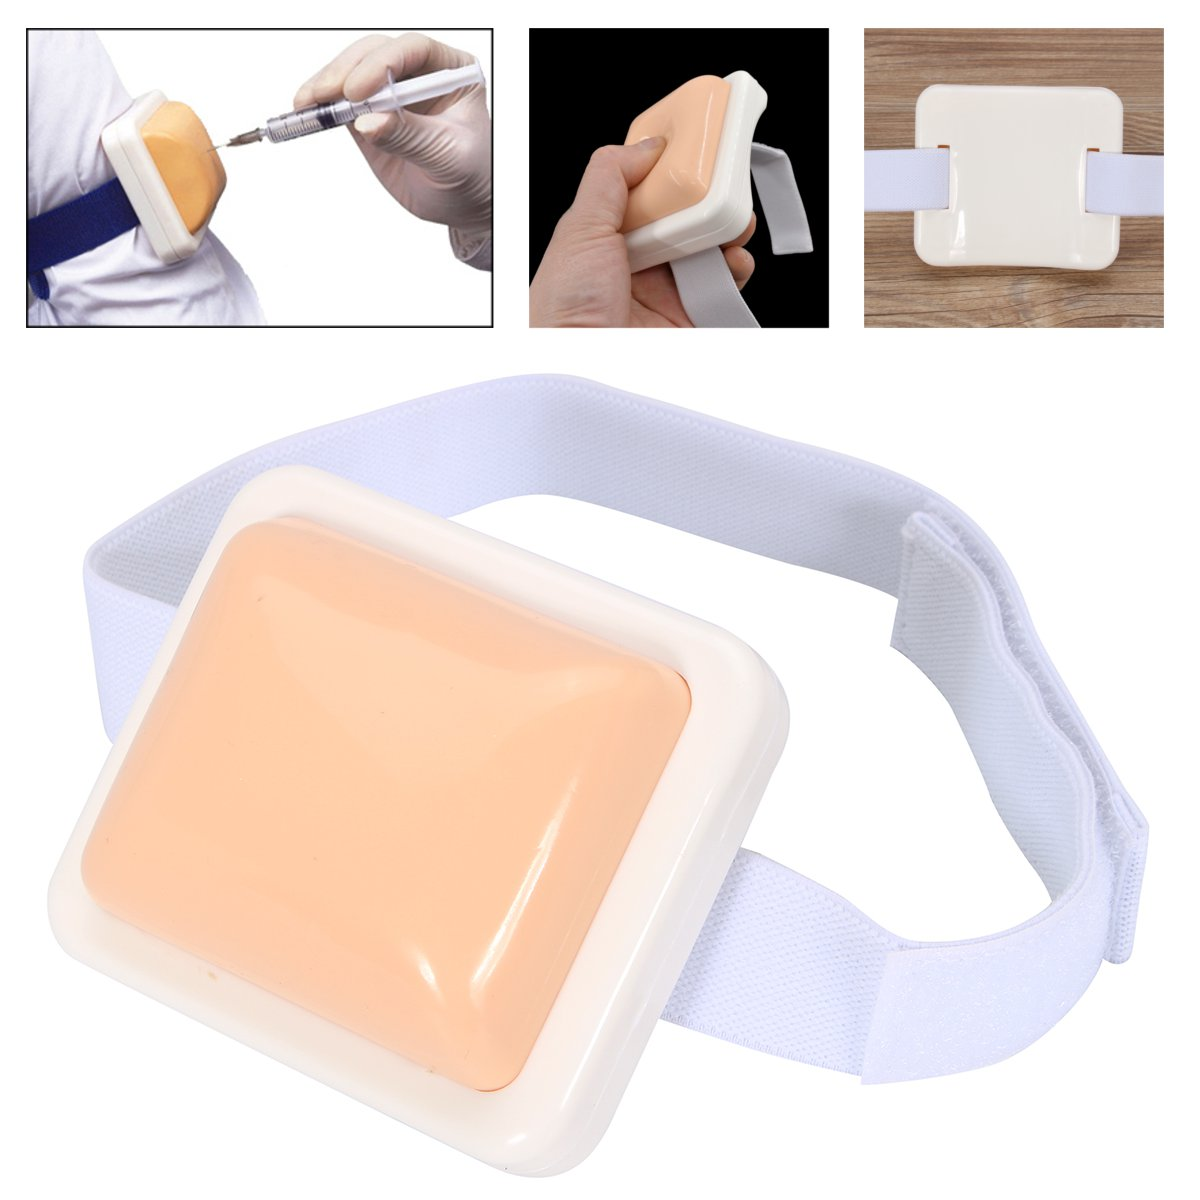 Plastic Intramuscular Injection Training Pad For Nurse Trainning Practice Tools Medical Science Teaching Educational Equipment